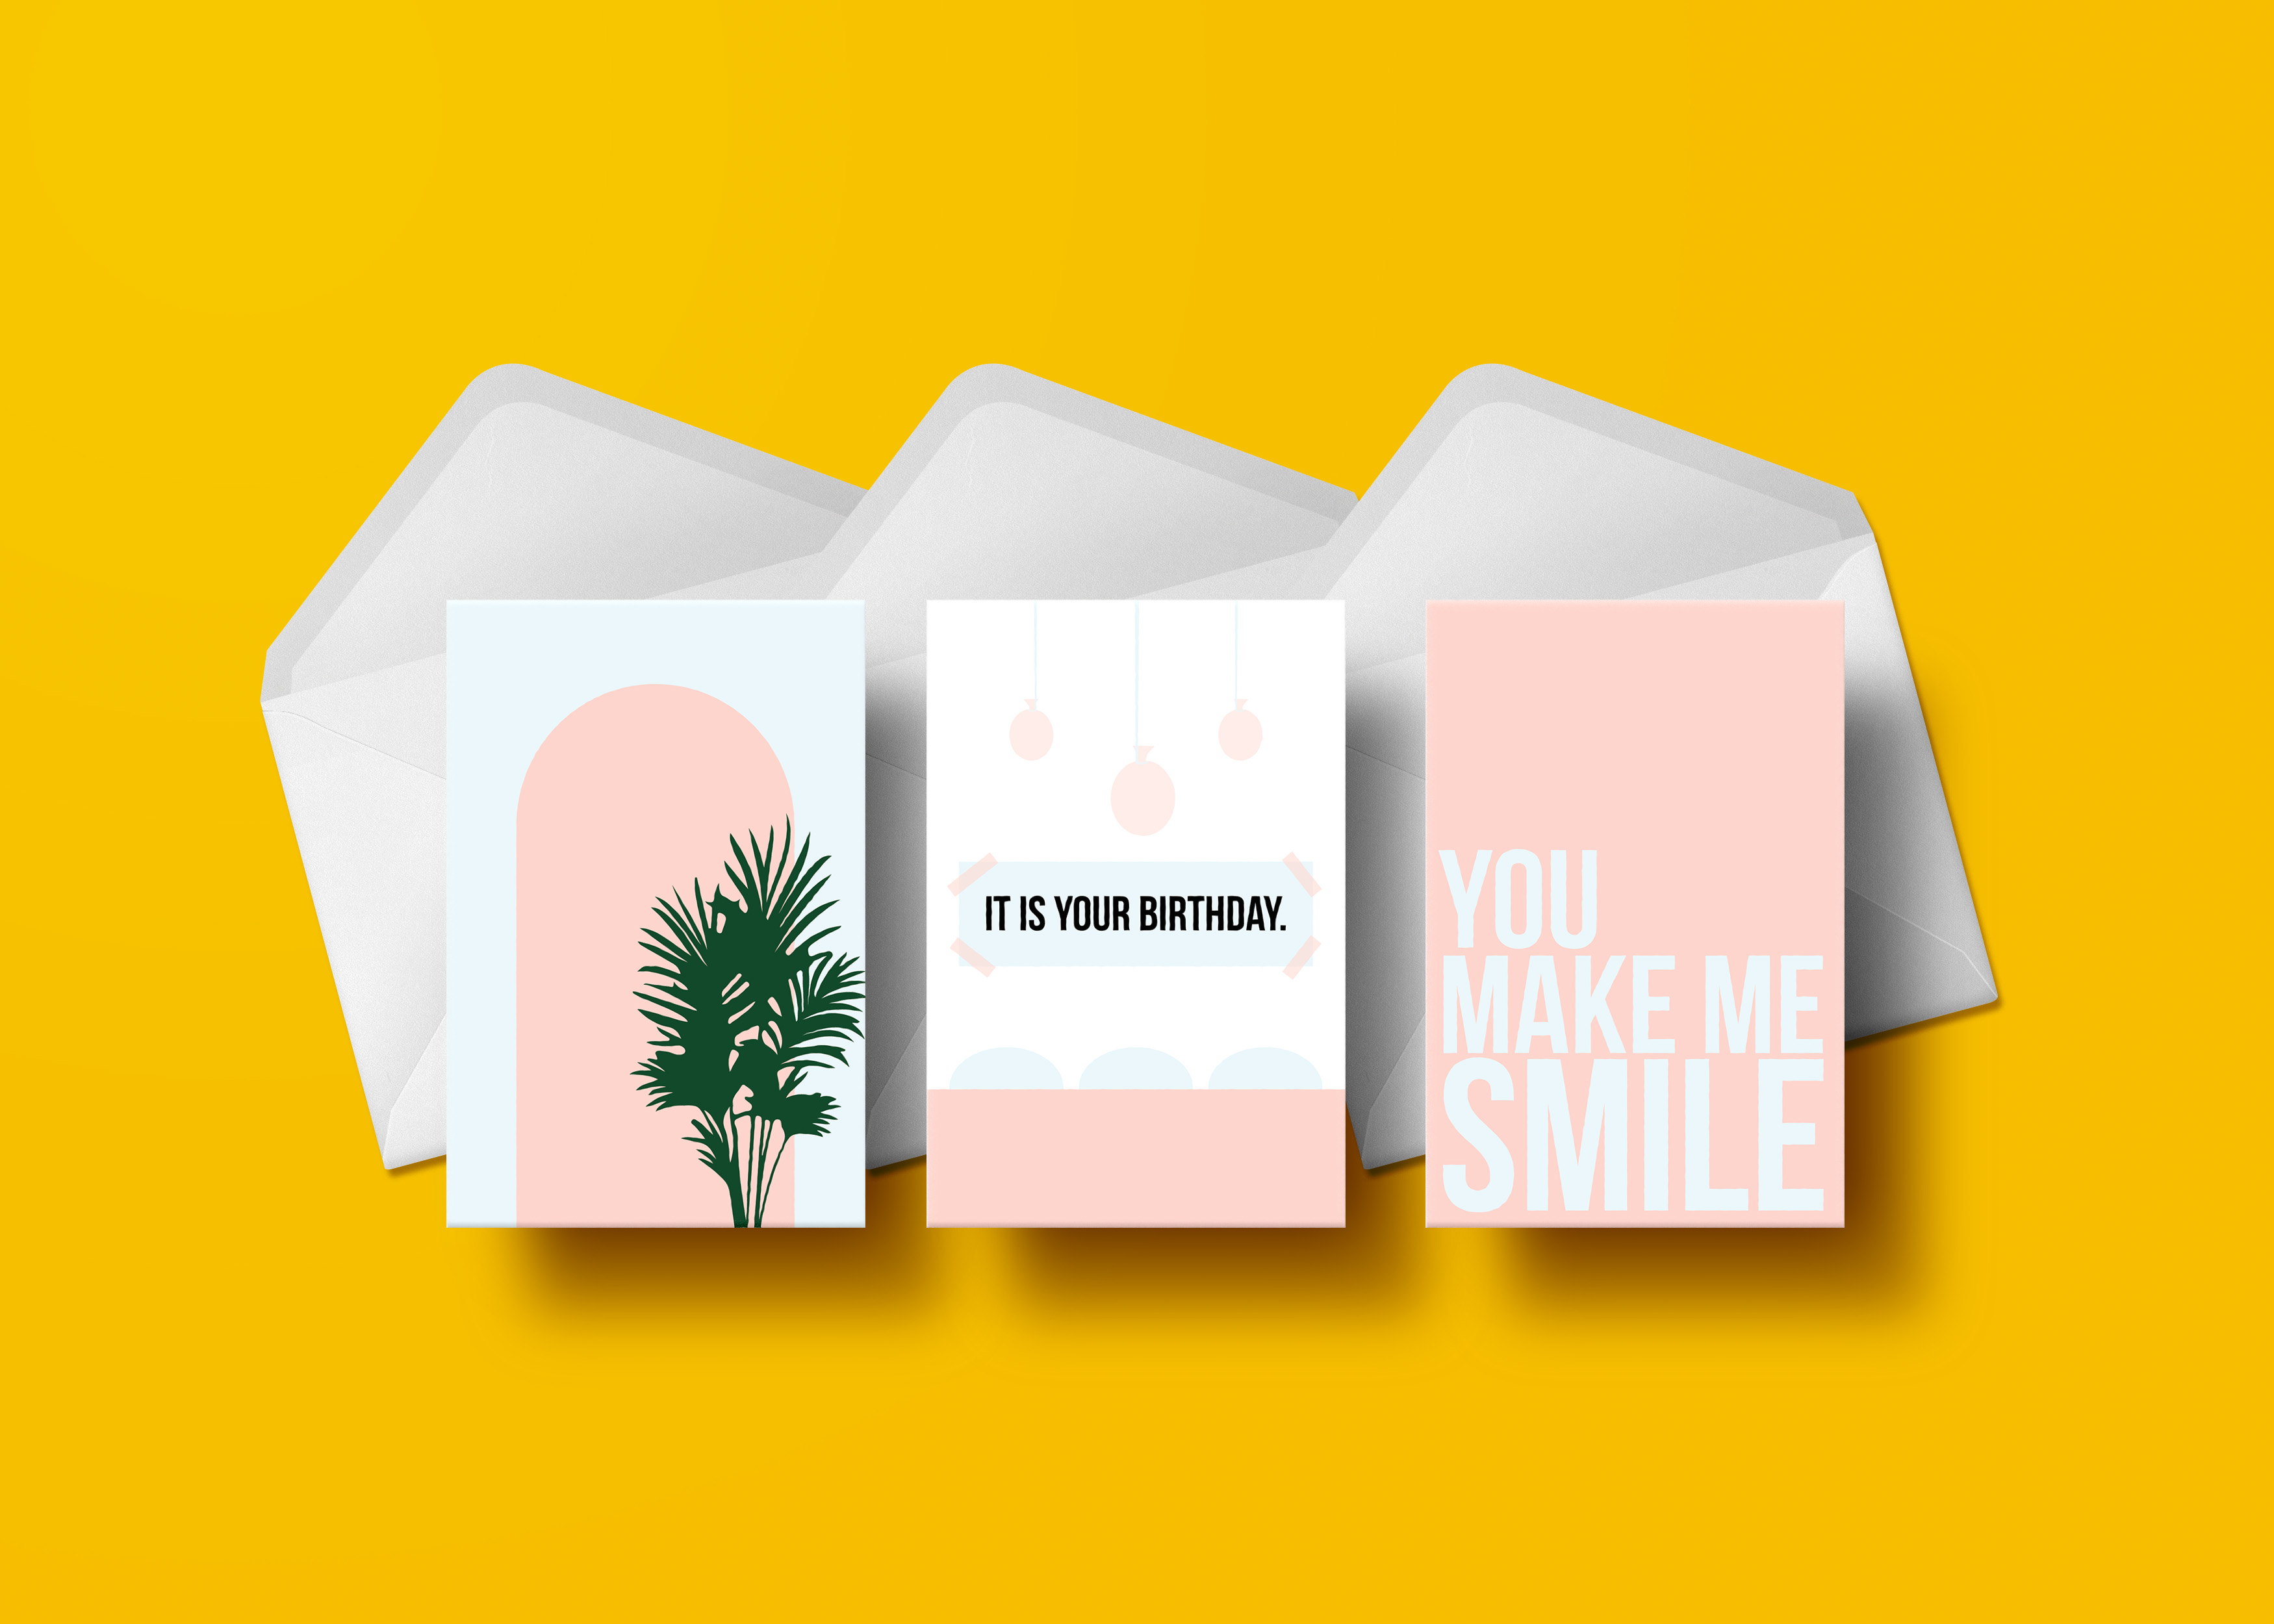 Check-in with your remote colleagues by sending them a playful greeting card just because. This pack helps you stay connected the good old-fashioned way- snail mail. Oh, and if you're a fan of The Office, we hope you'll find humour in the birthday greeting! All cards are blank inside so you can write your own sentiment and words of encouragement. 3 card assortment per pack.